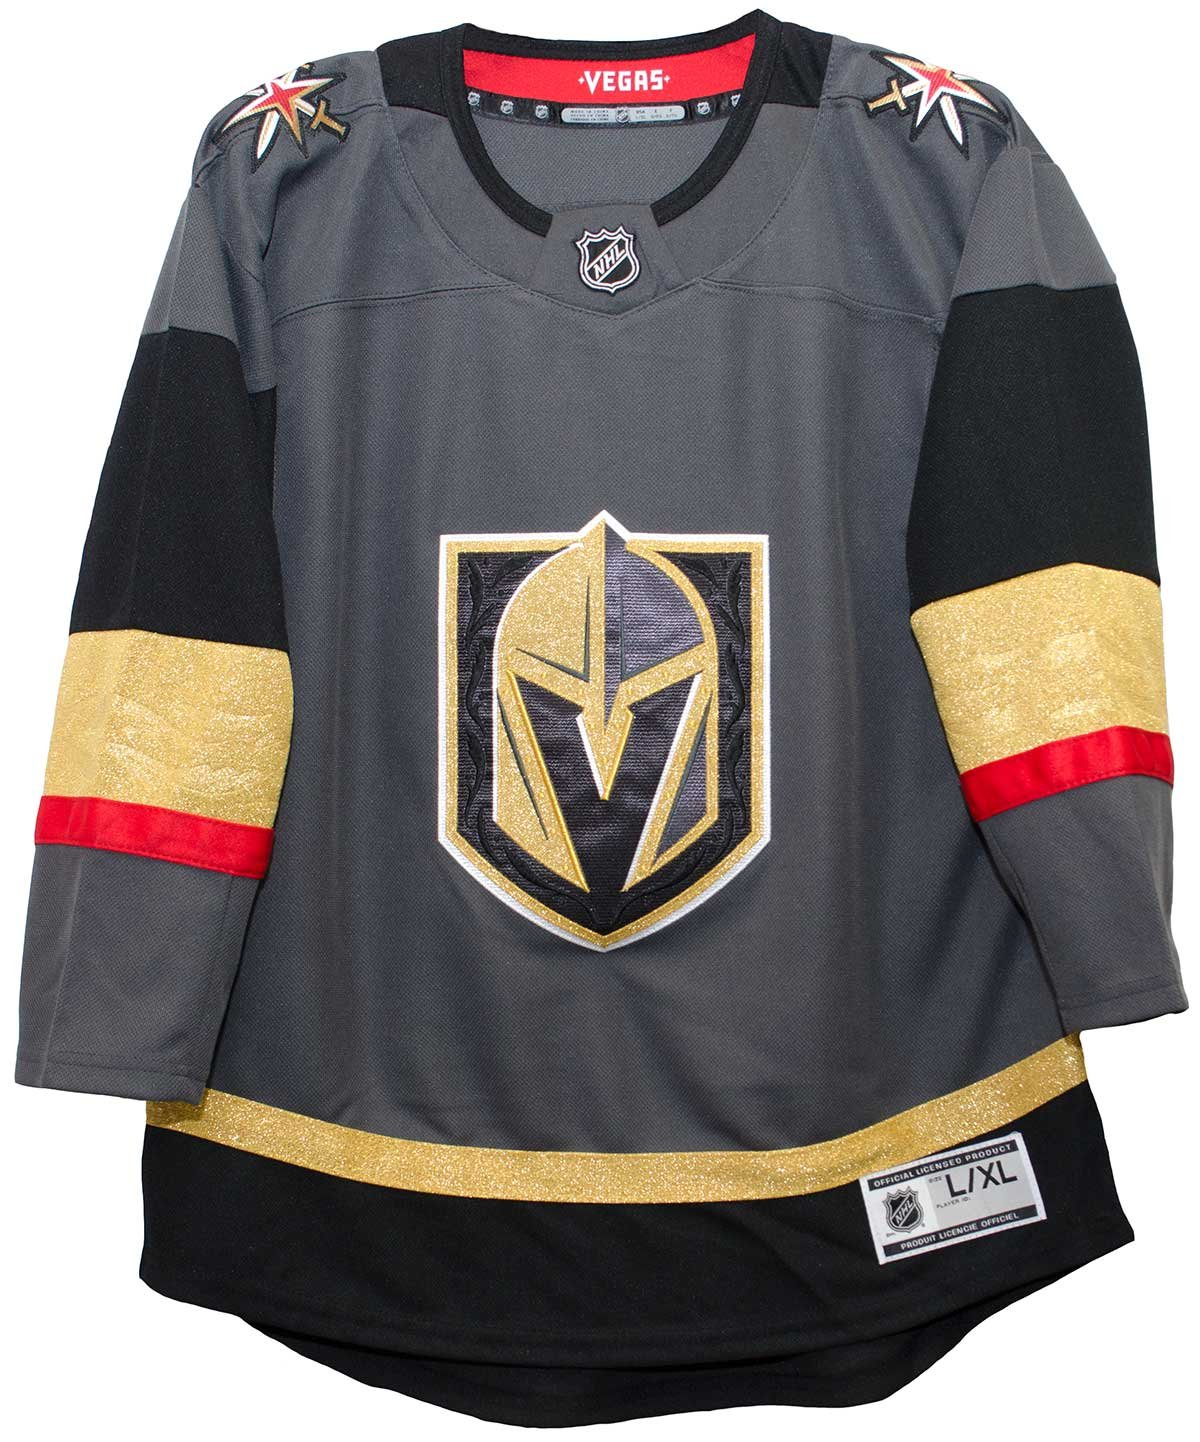 low priced 47691 e60b5 Outerstuff Vegas Golden Knights Youth Premier Home Jersey (Youth Size)